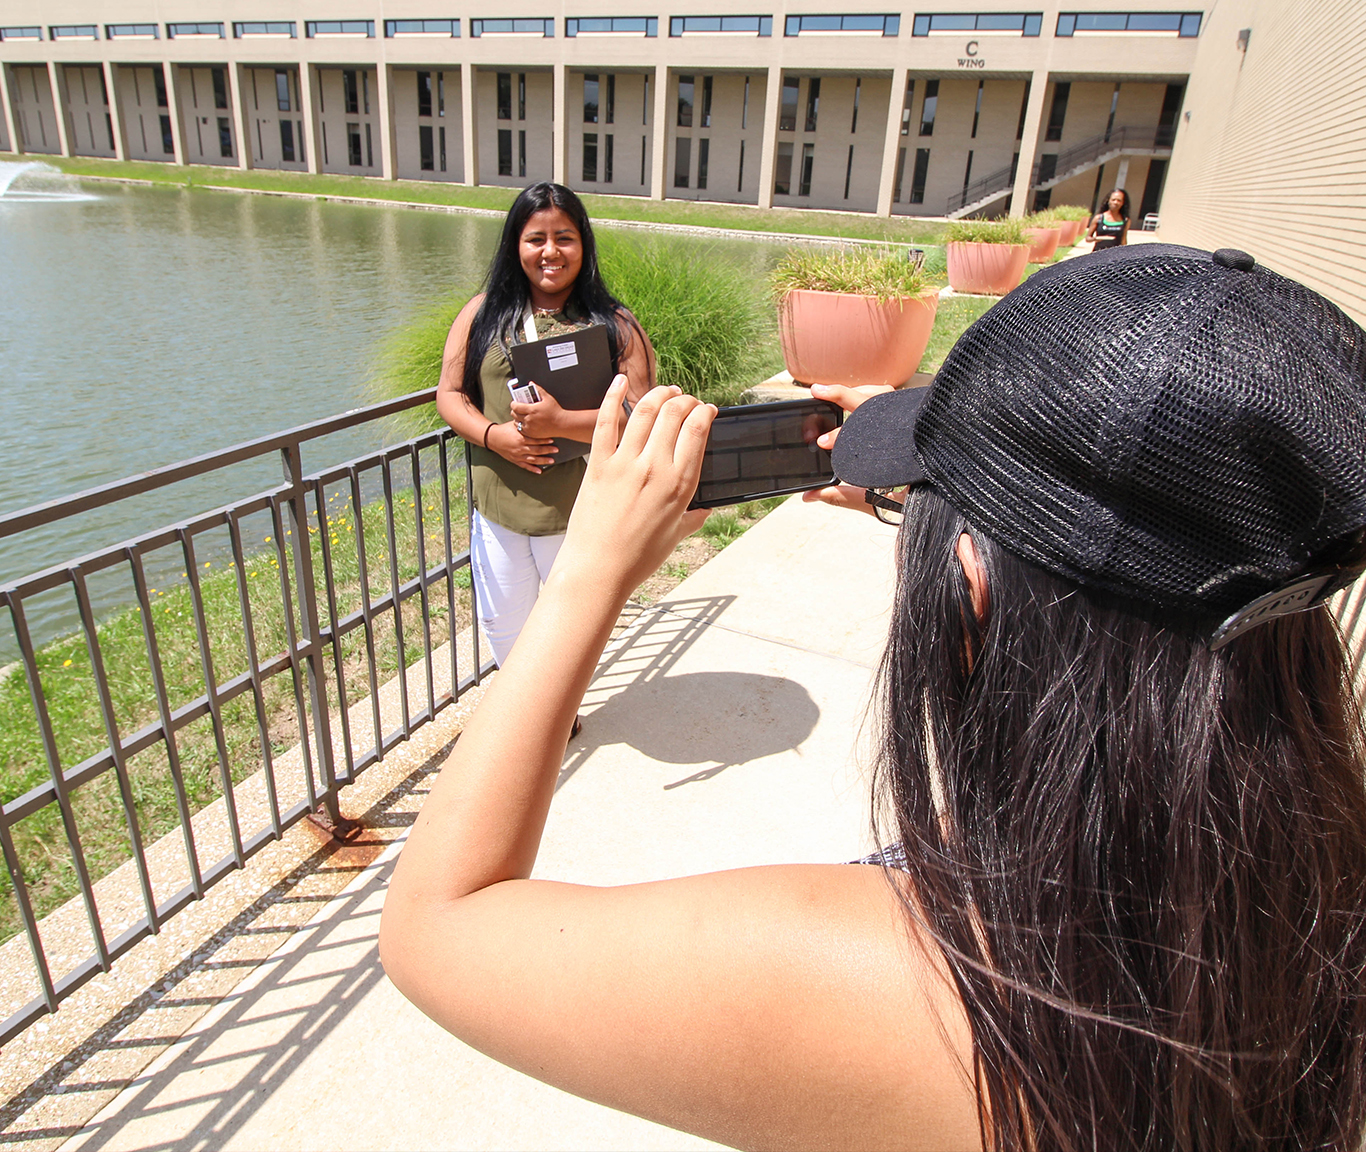 Student taking a picture at LMC campus